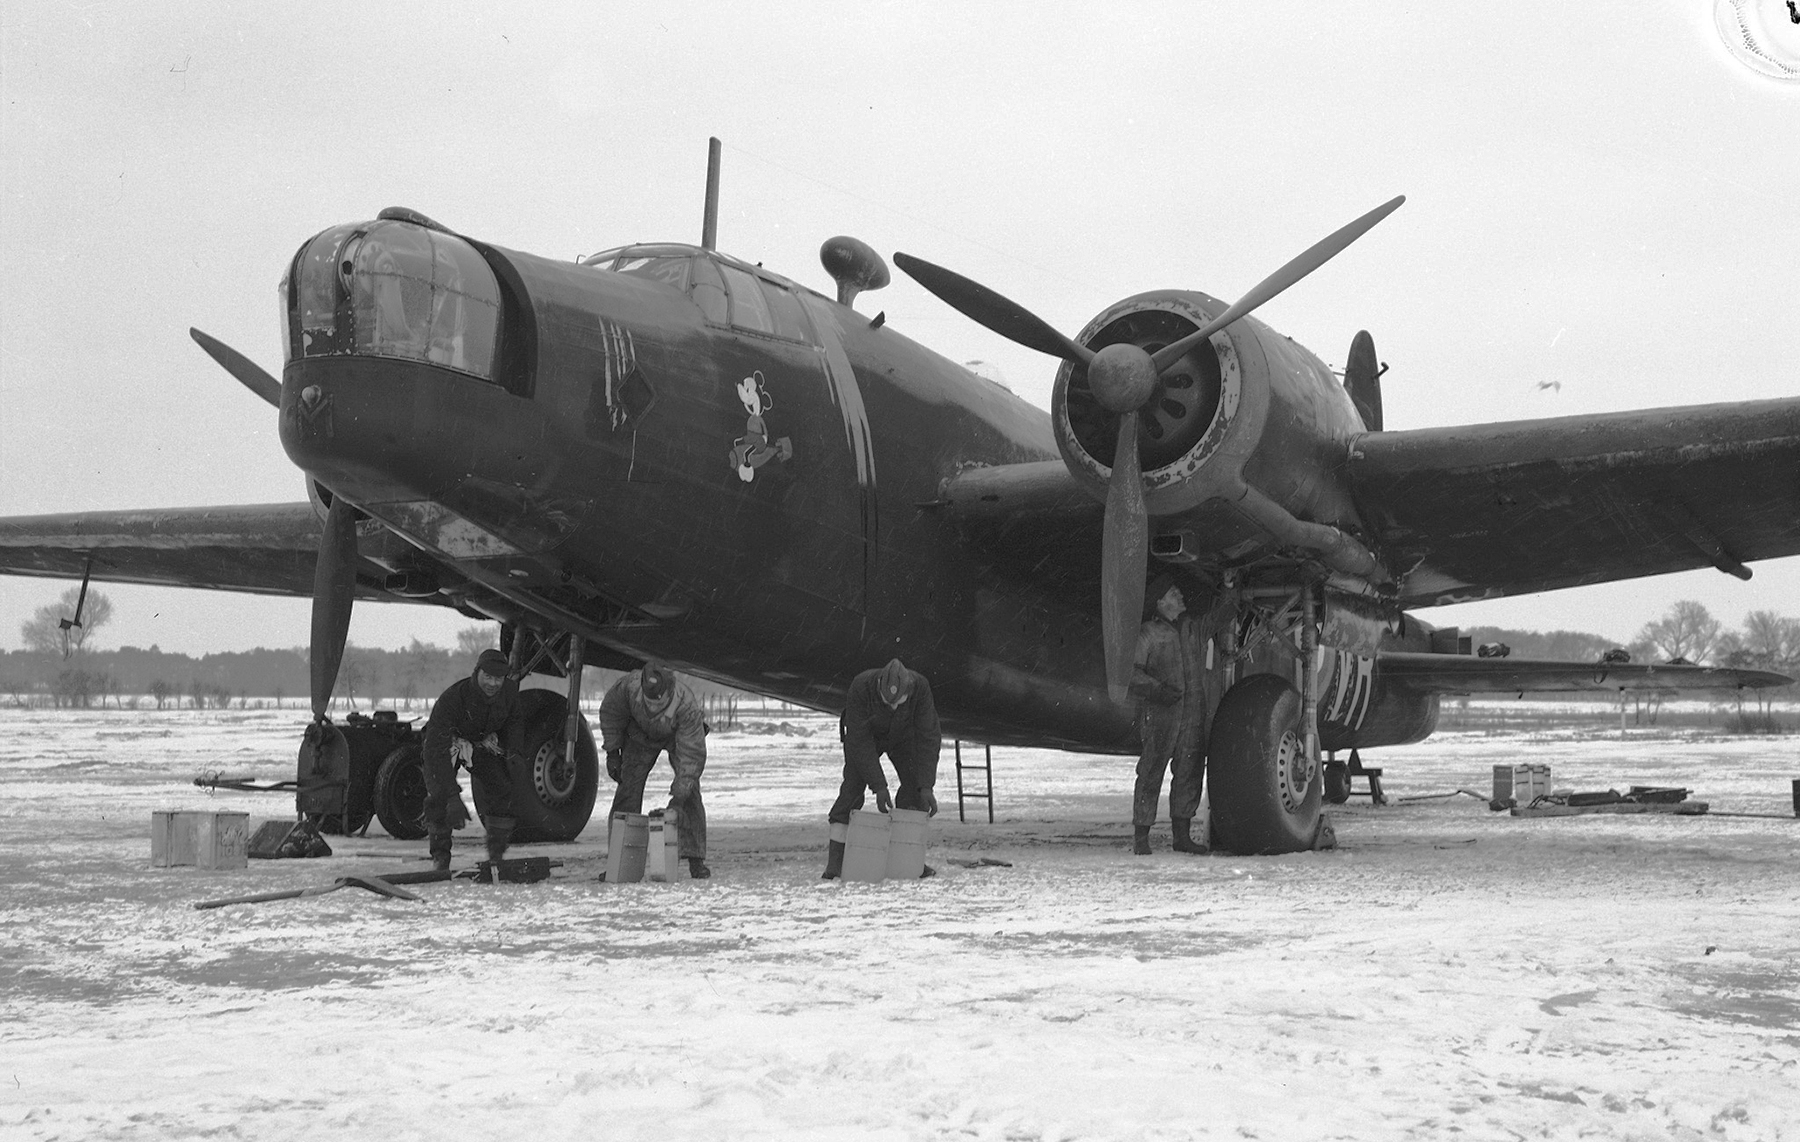 From left, 419 Squadron riggers Leading Aircraftman James Gardiner (Yorkton, Saskatchewan); Leading Aircraftman Fred Fitzhugh (Verdun, Quebec); and Leading Aircraftman Fred Scott (Midland, Ontario); and a Royal Air Force crewman, load ammunition onto a Wellington aircraft at a Royal Canadian Air Force bomber base in England on February 9, 1942. PHOTO: DND Archives, PL-7091